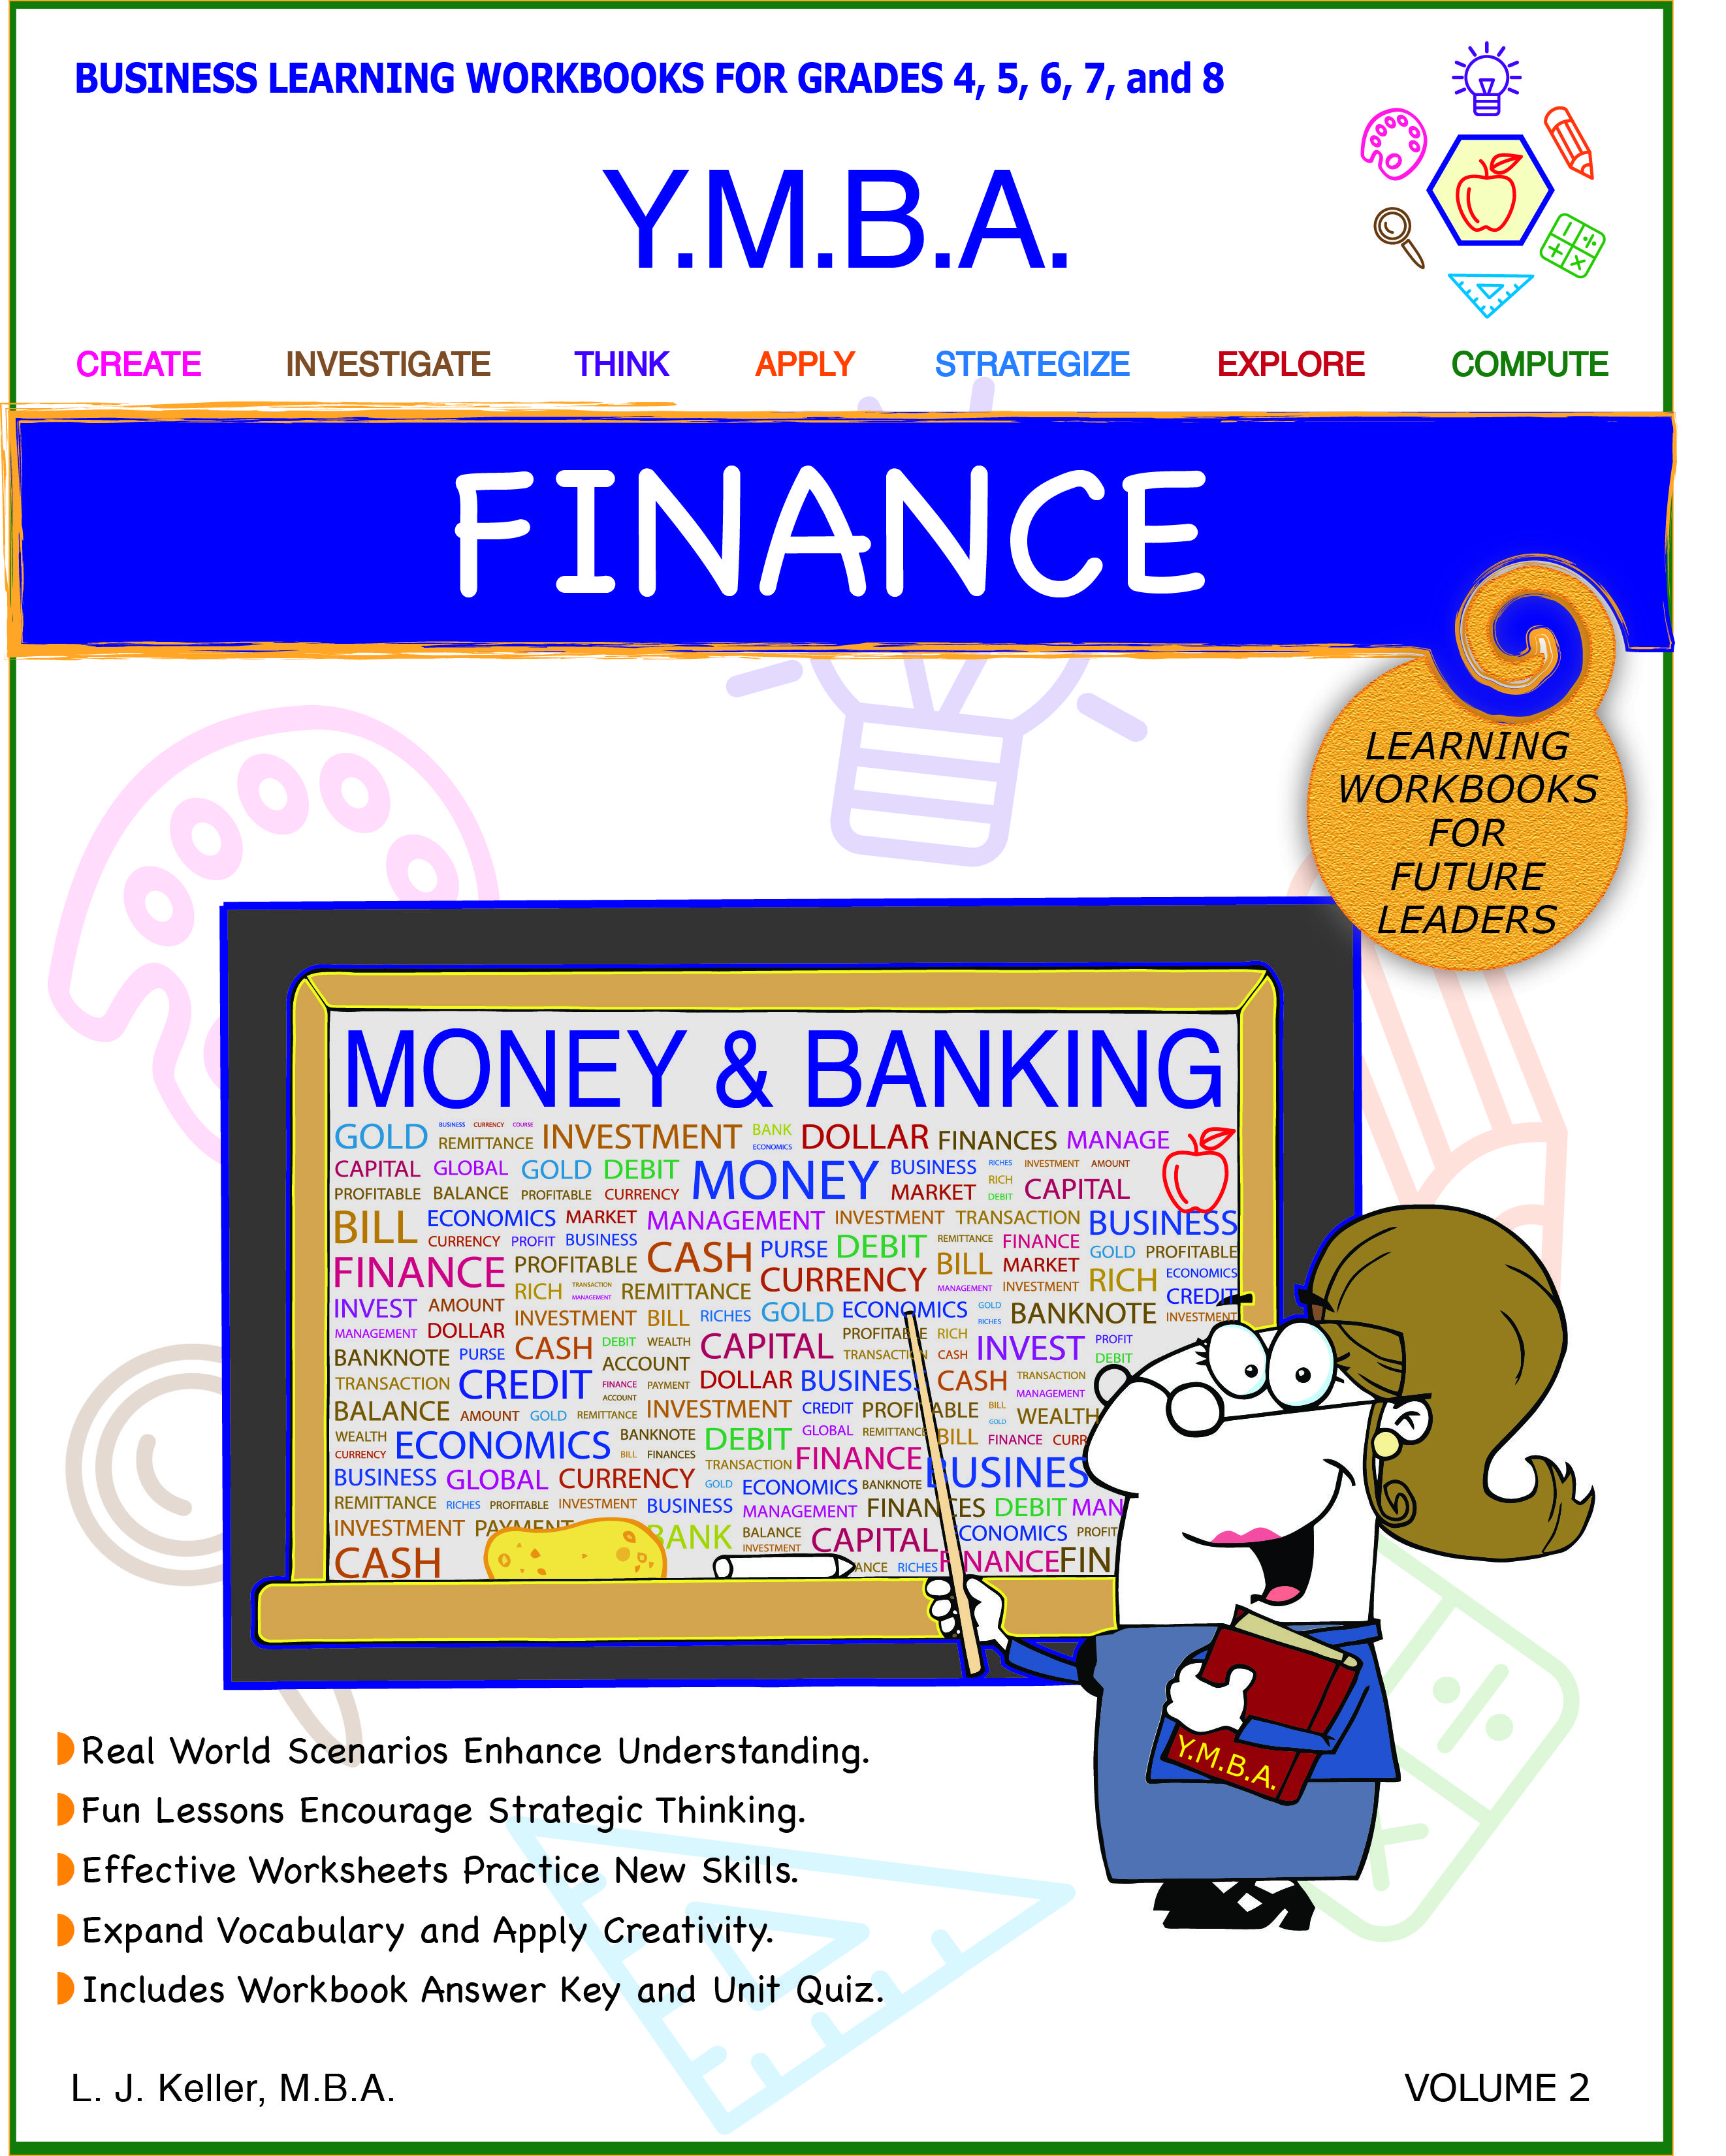 YMBA Finance workbook now available. Download free sample ...